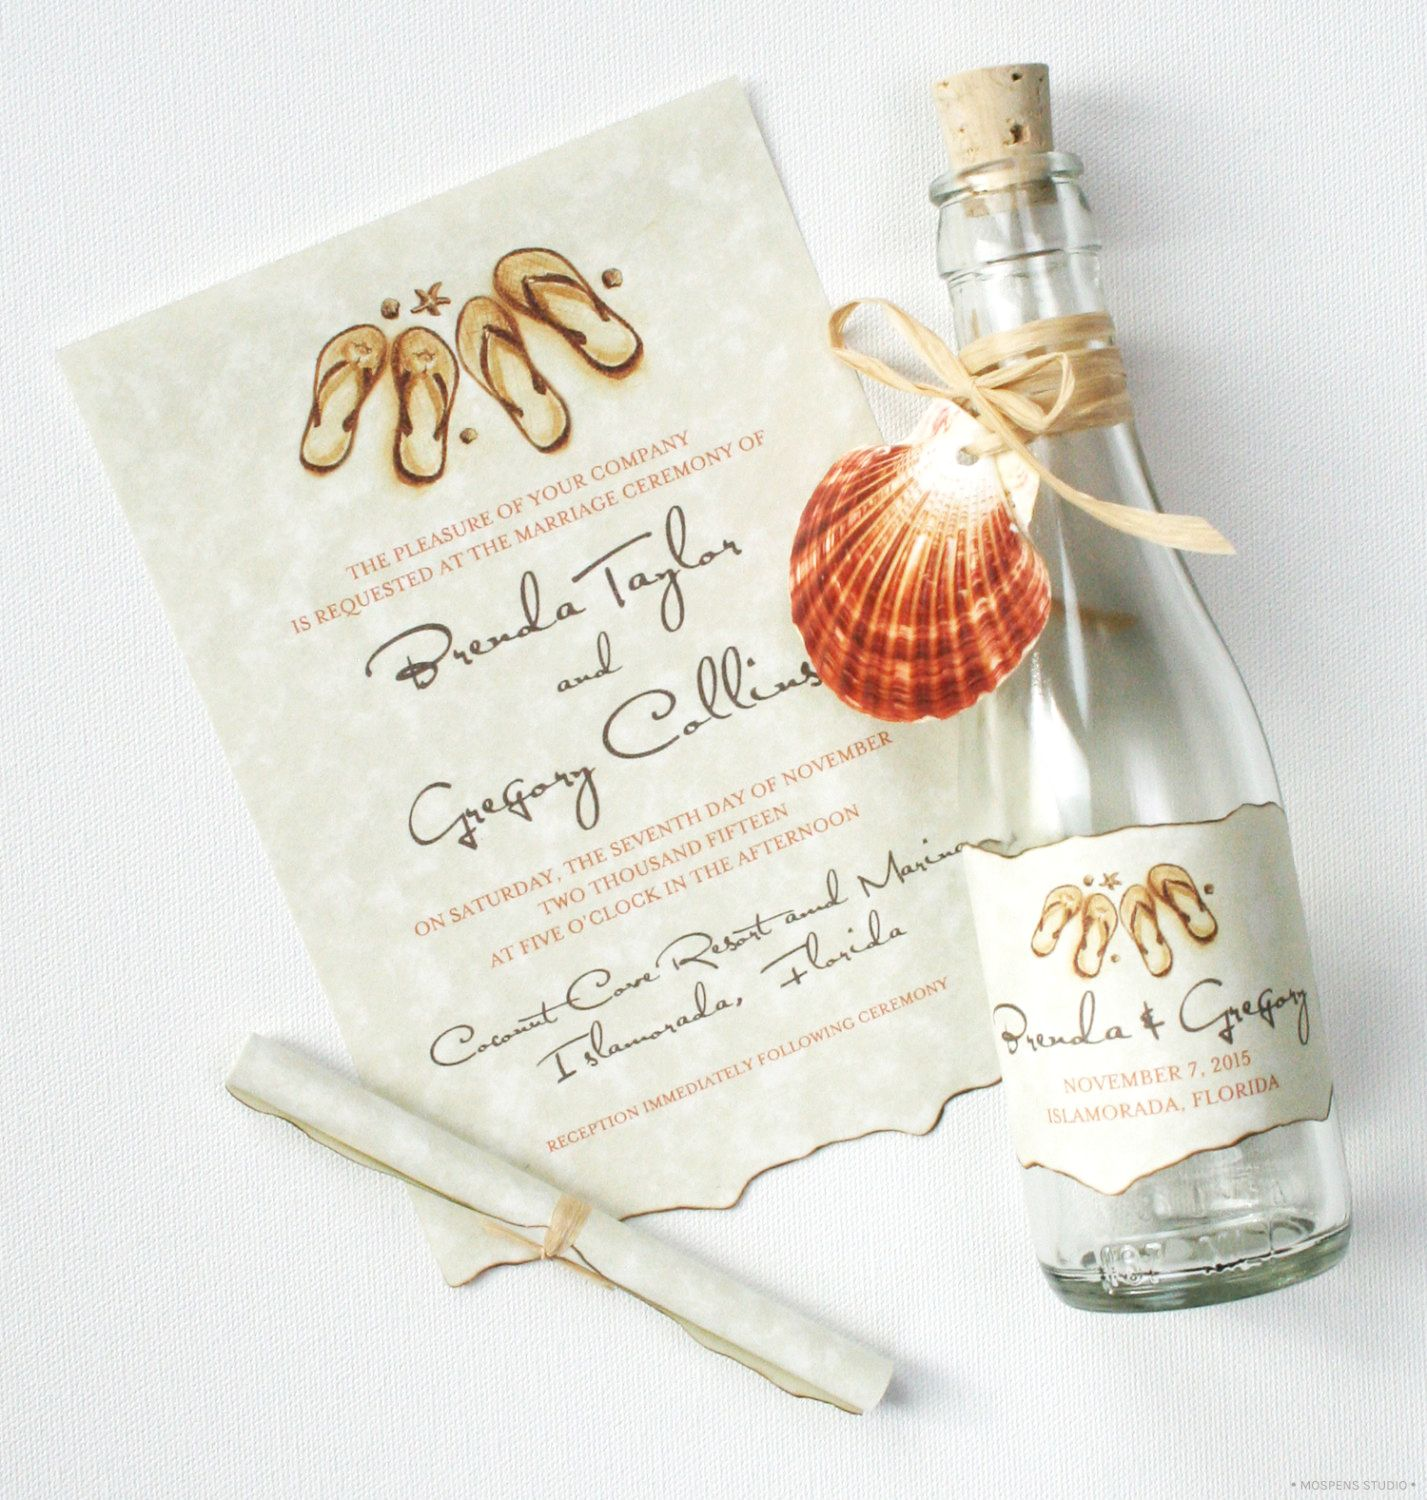 ideas for beach wedding party favors%0A    Bottle Beach Wedding Invitation Ideas you u    ll love for your beach wedding   www